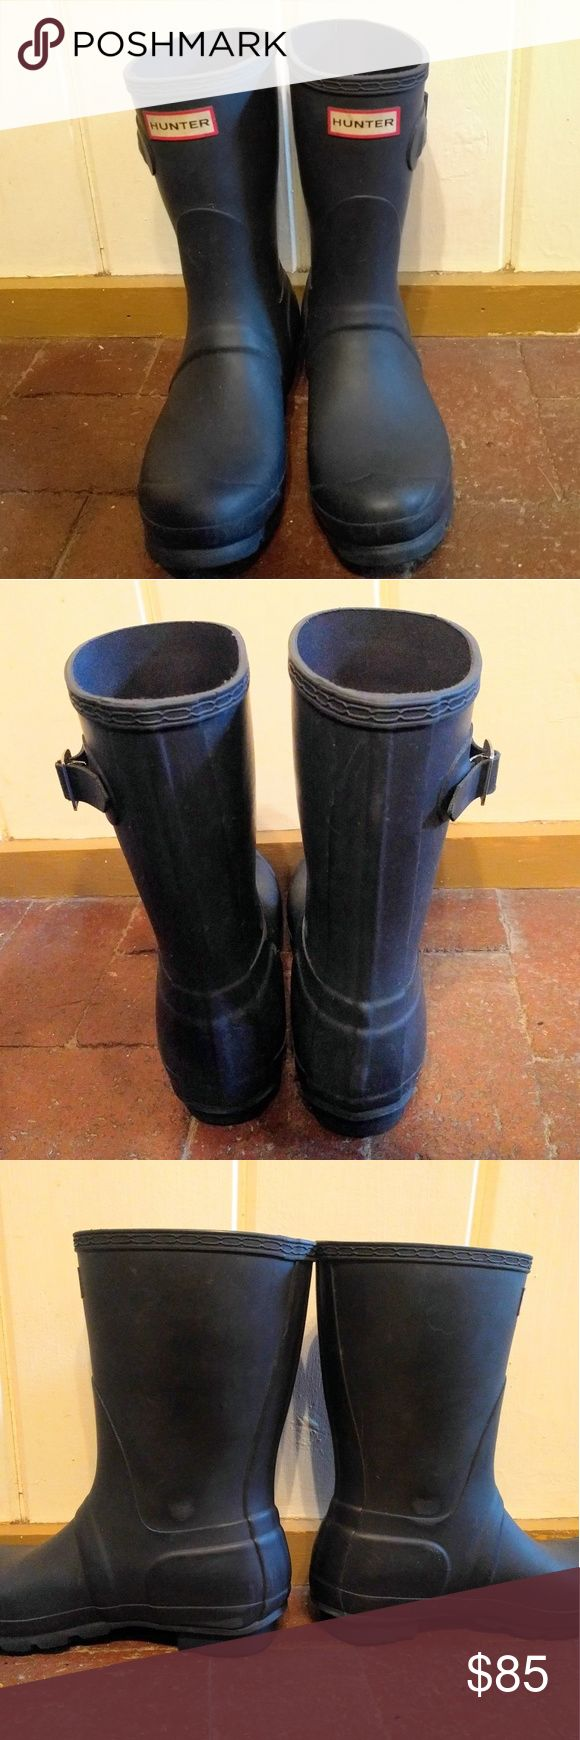 Hunter Original Short Navy Boots Used for one season, in good condition. Some scuffing/minor scratches, but mostly in really good condition. Hunter Boots Shoes Winter & Rain Boots